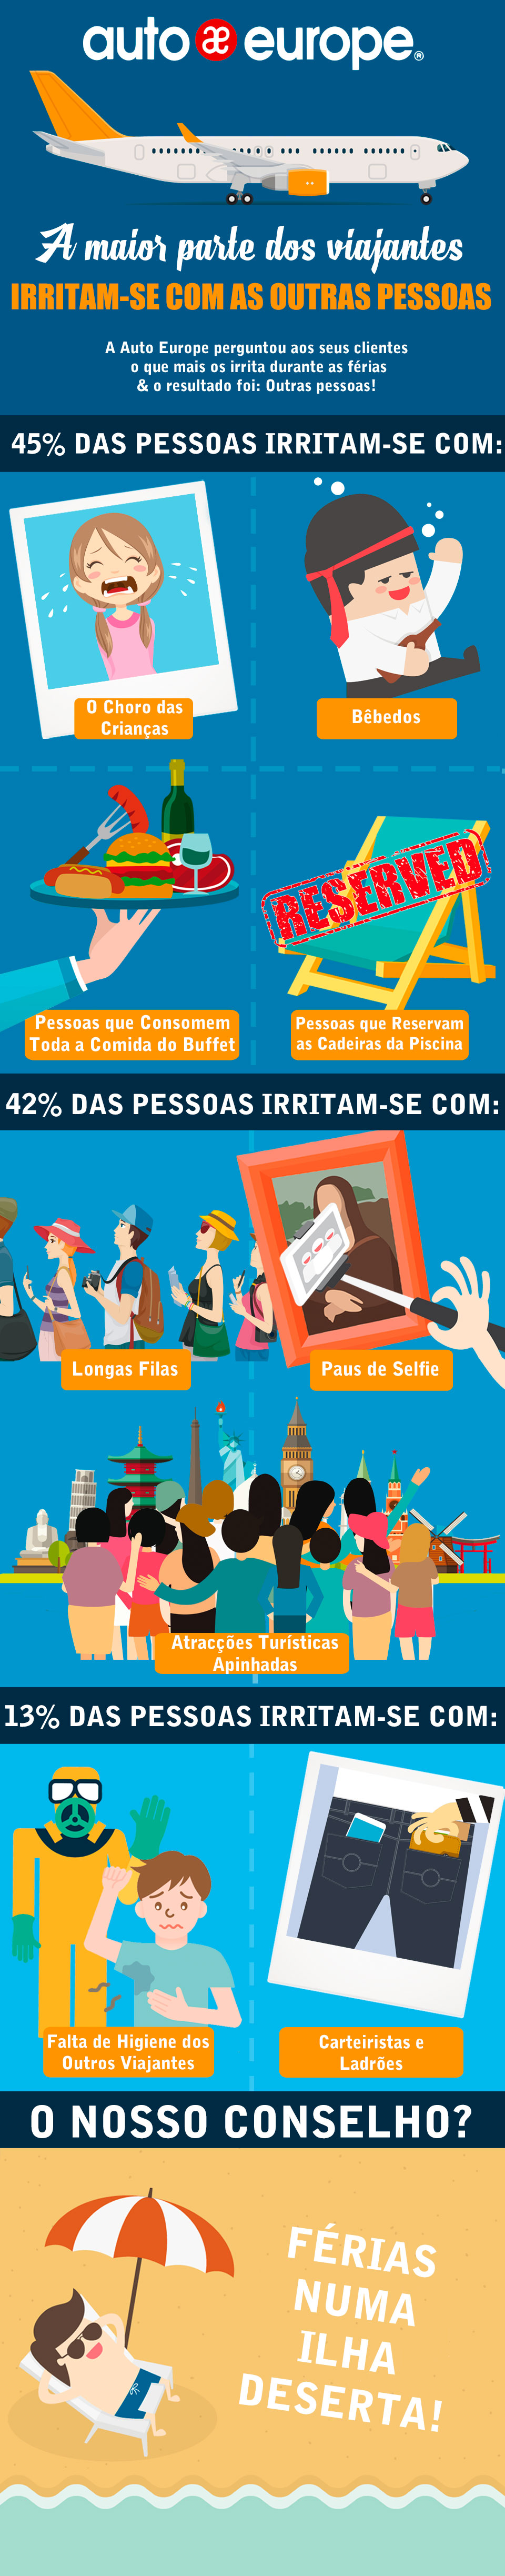 O que mais nos irrita durante as férias